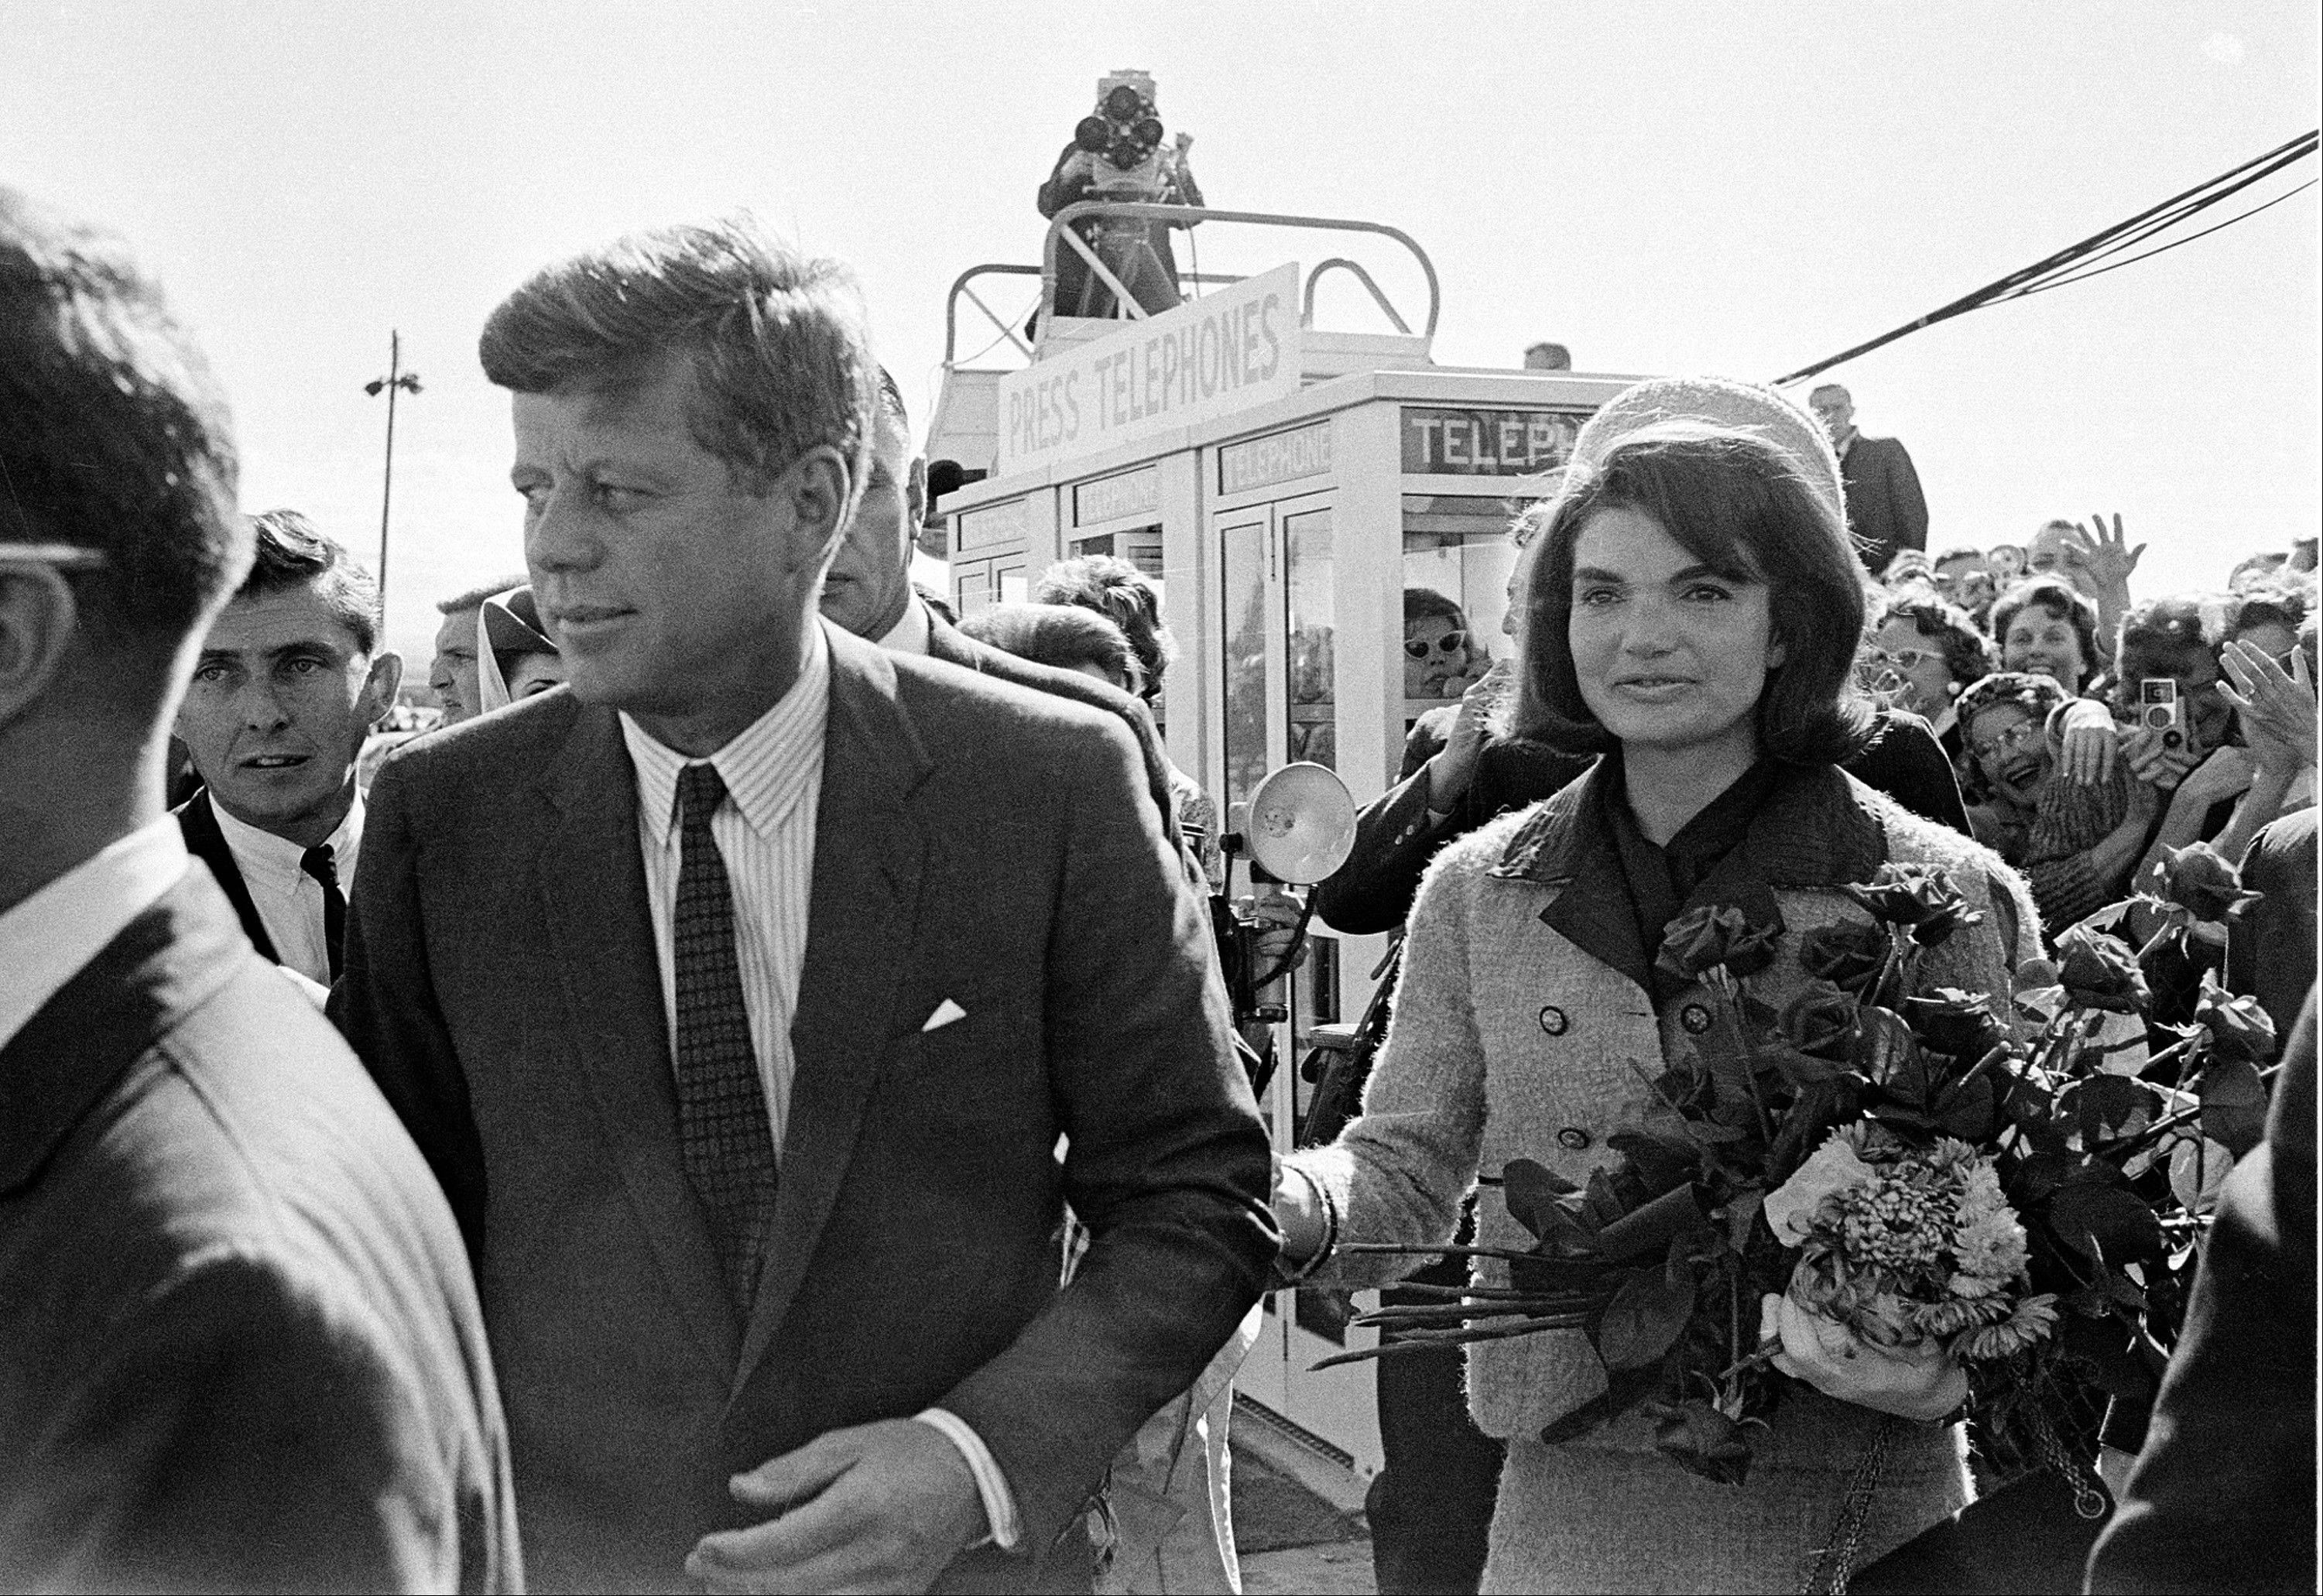 President John F. Kennedy and his wife Jacqueline Kennedy upon their arrival at Dallas Airport shortly before President Kennedy was assassinated. PBS says its fall schedule will include a variety of specials marking President John F. Kennedy�s death 50 years ago. In the weeks leading up to the milestone anniversary of his Nov. 22, 1963, slaying in Dallas, PBS said it will air �JFK,� a four-hour �American Experience� special.